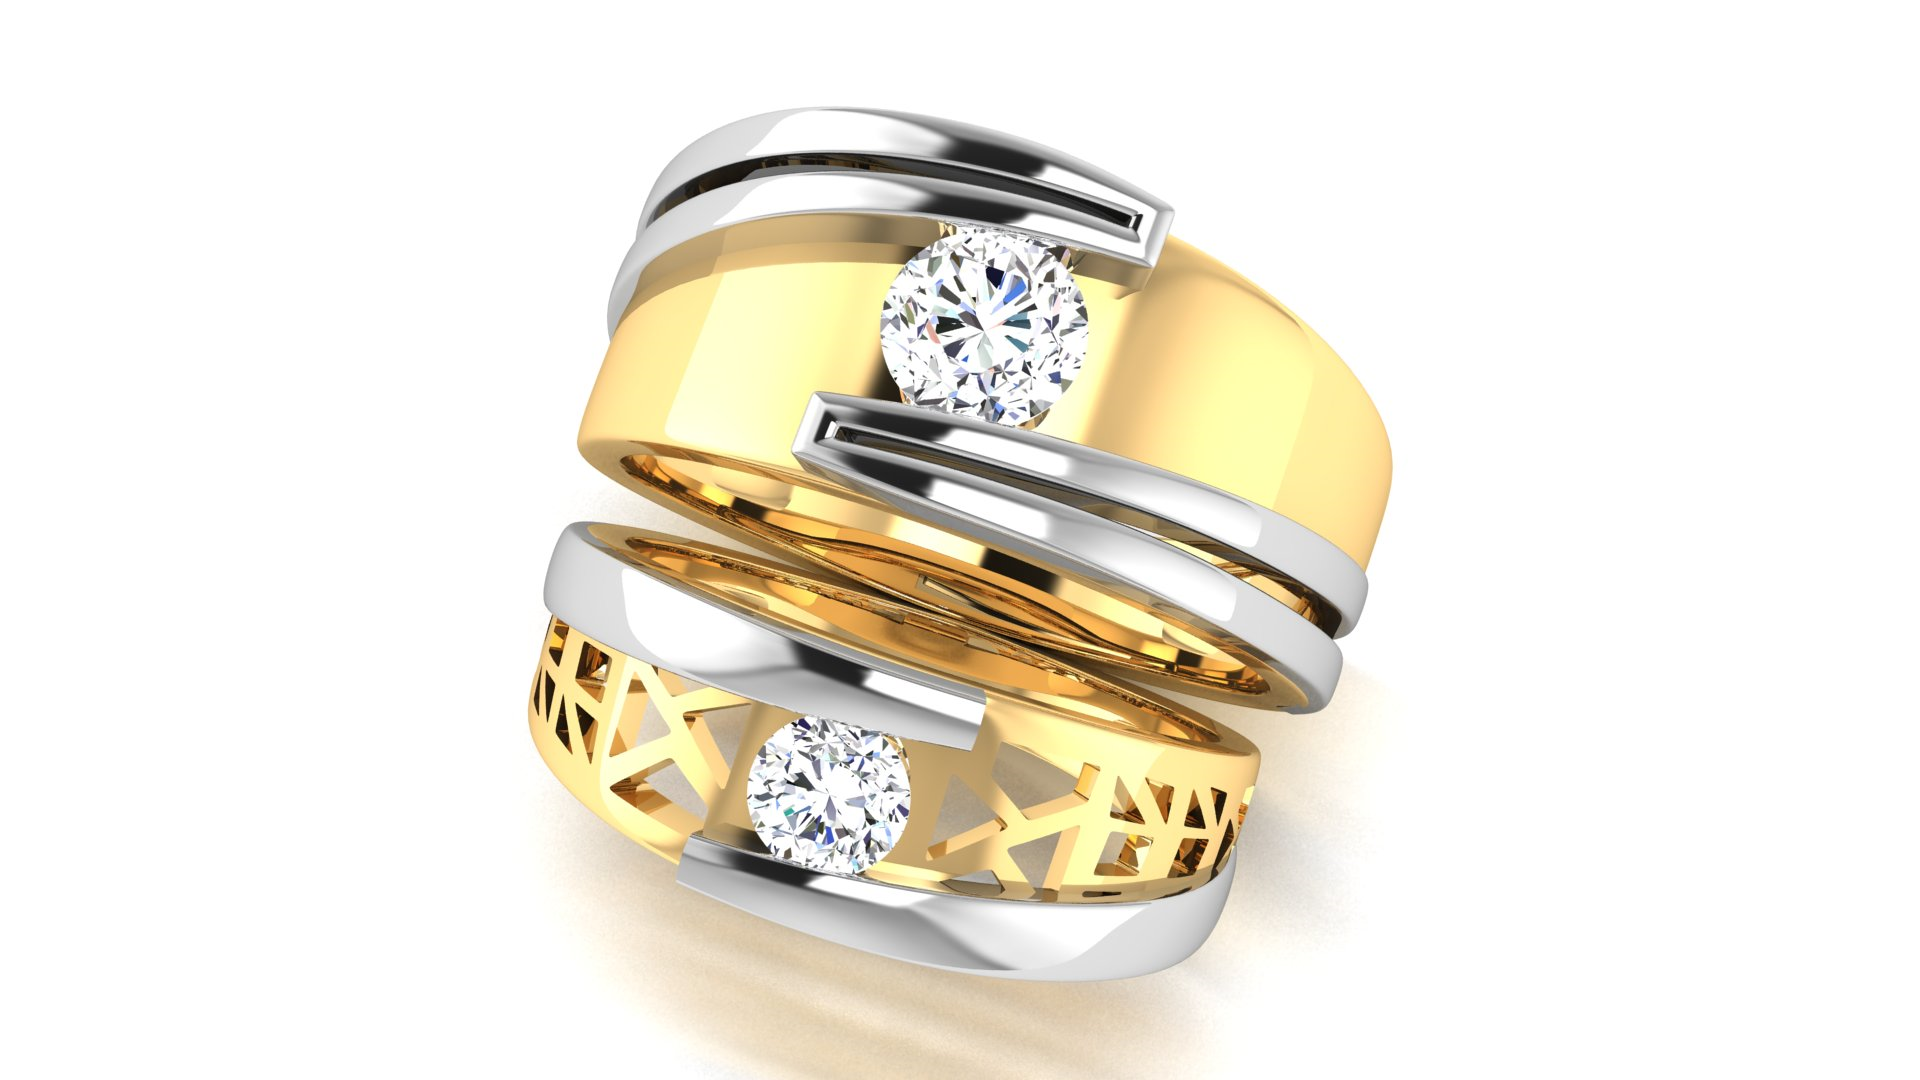 Stylish One Diamond ring for man and Women